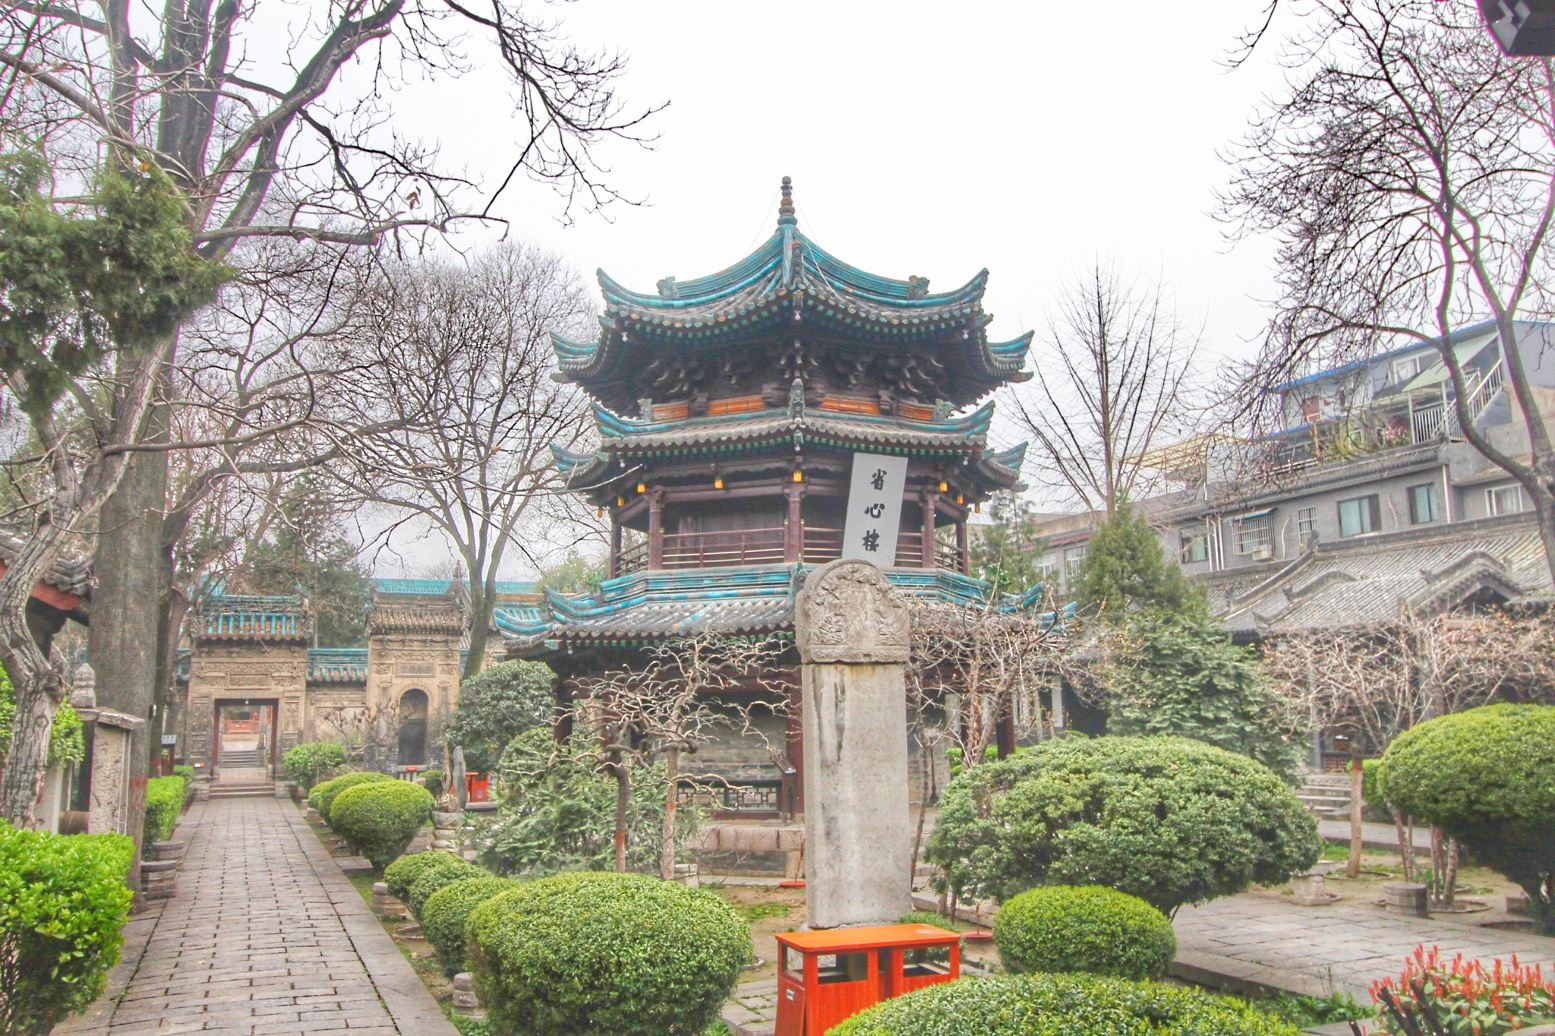 Mosque garden in the Xi'an Muslim Quarter